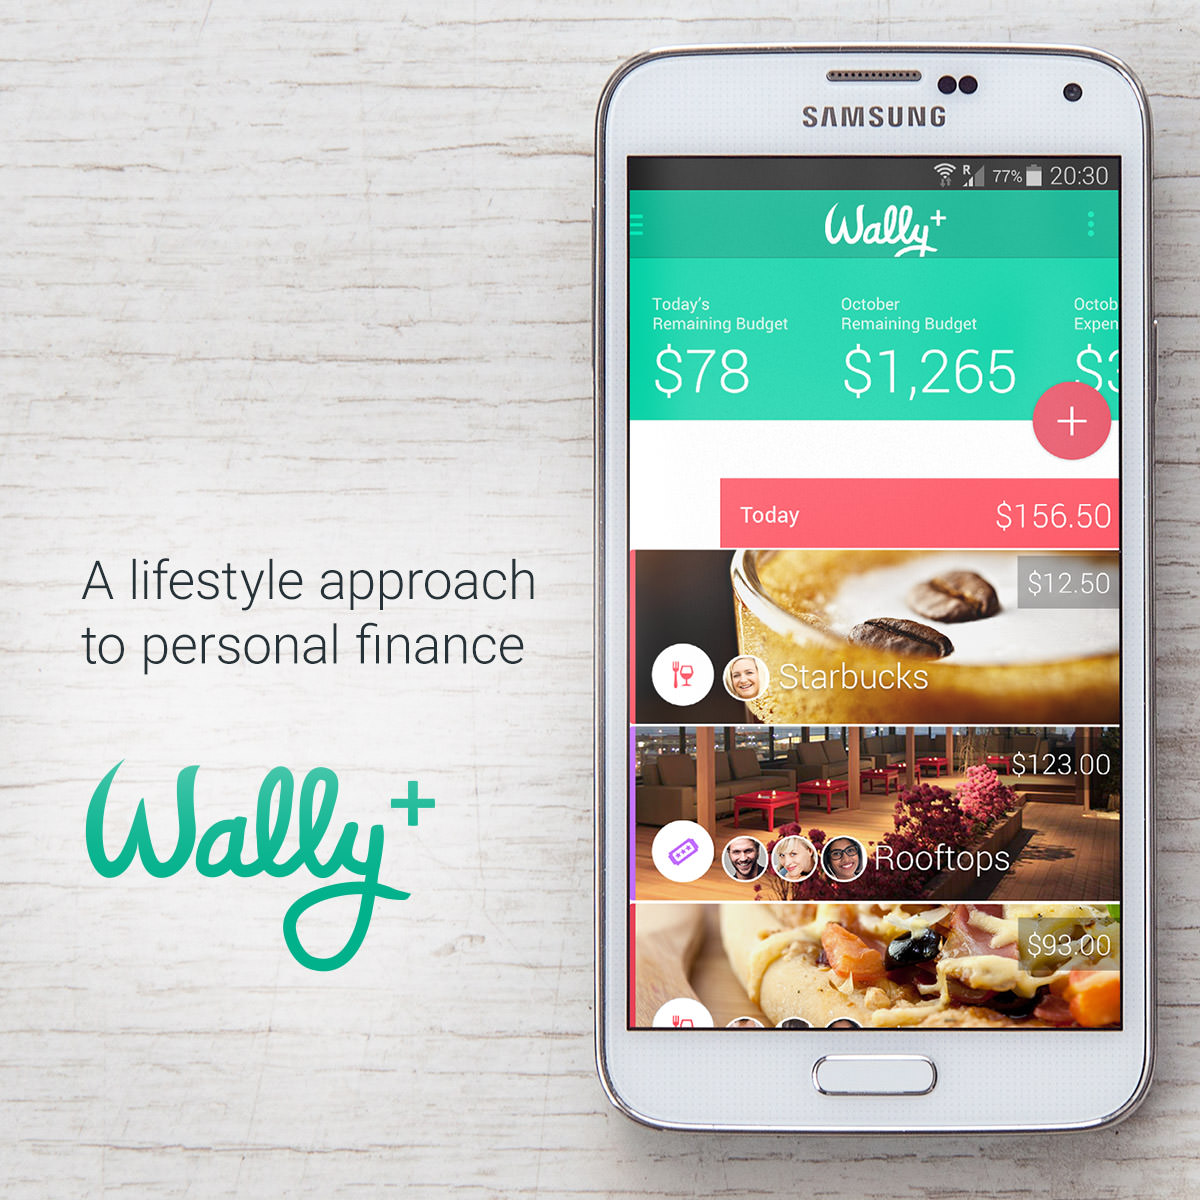 Track Your Expenses Budget Money using Phones